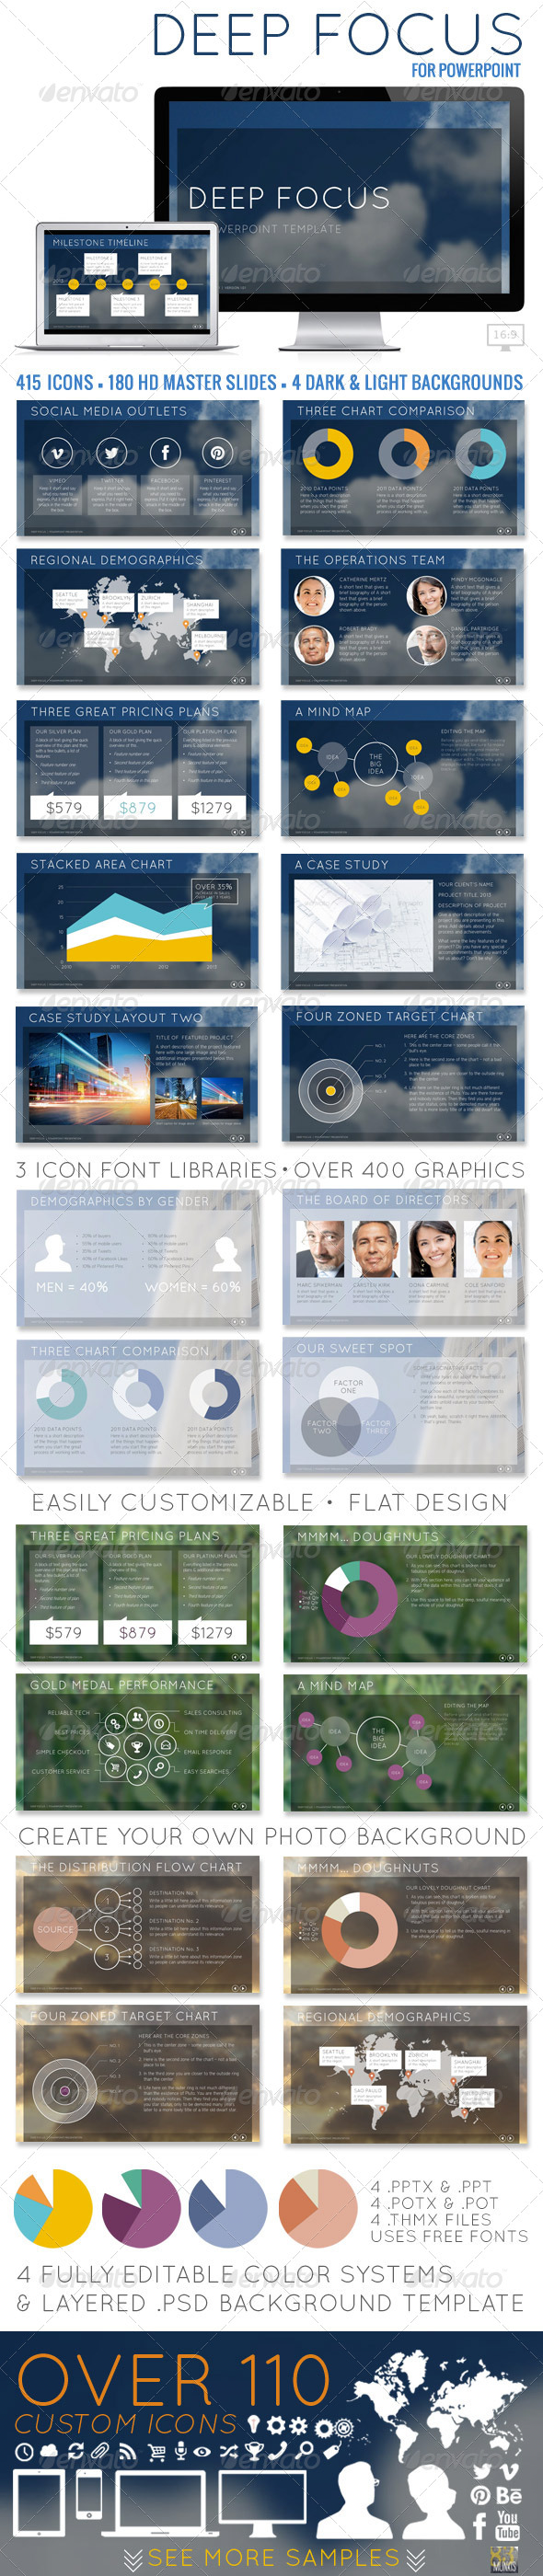 Deep Focus Powerpoint Presentation Template - Creative Powerpoint Templates